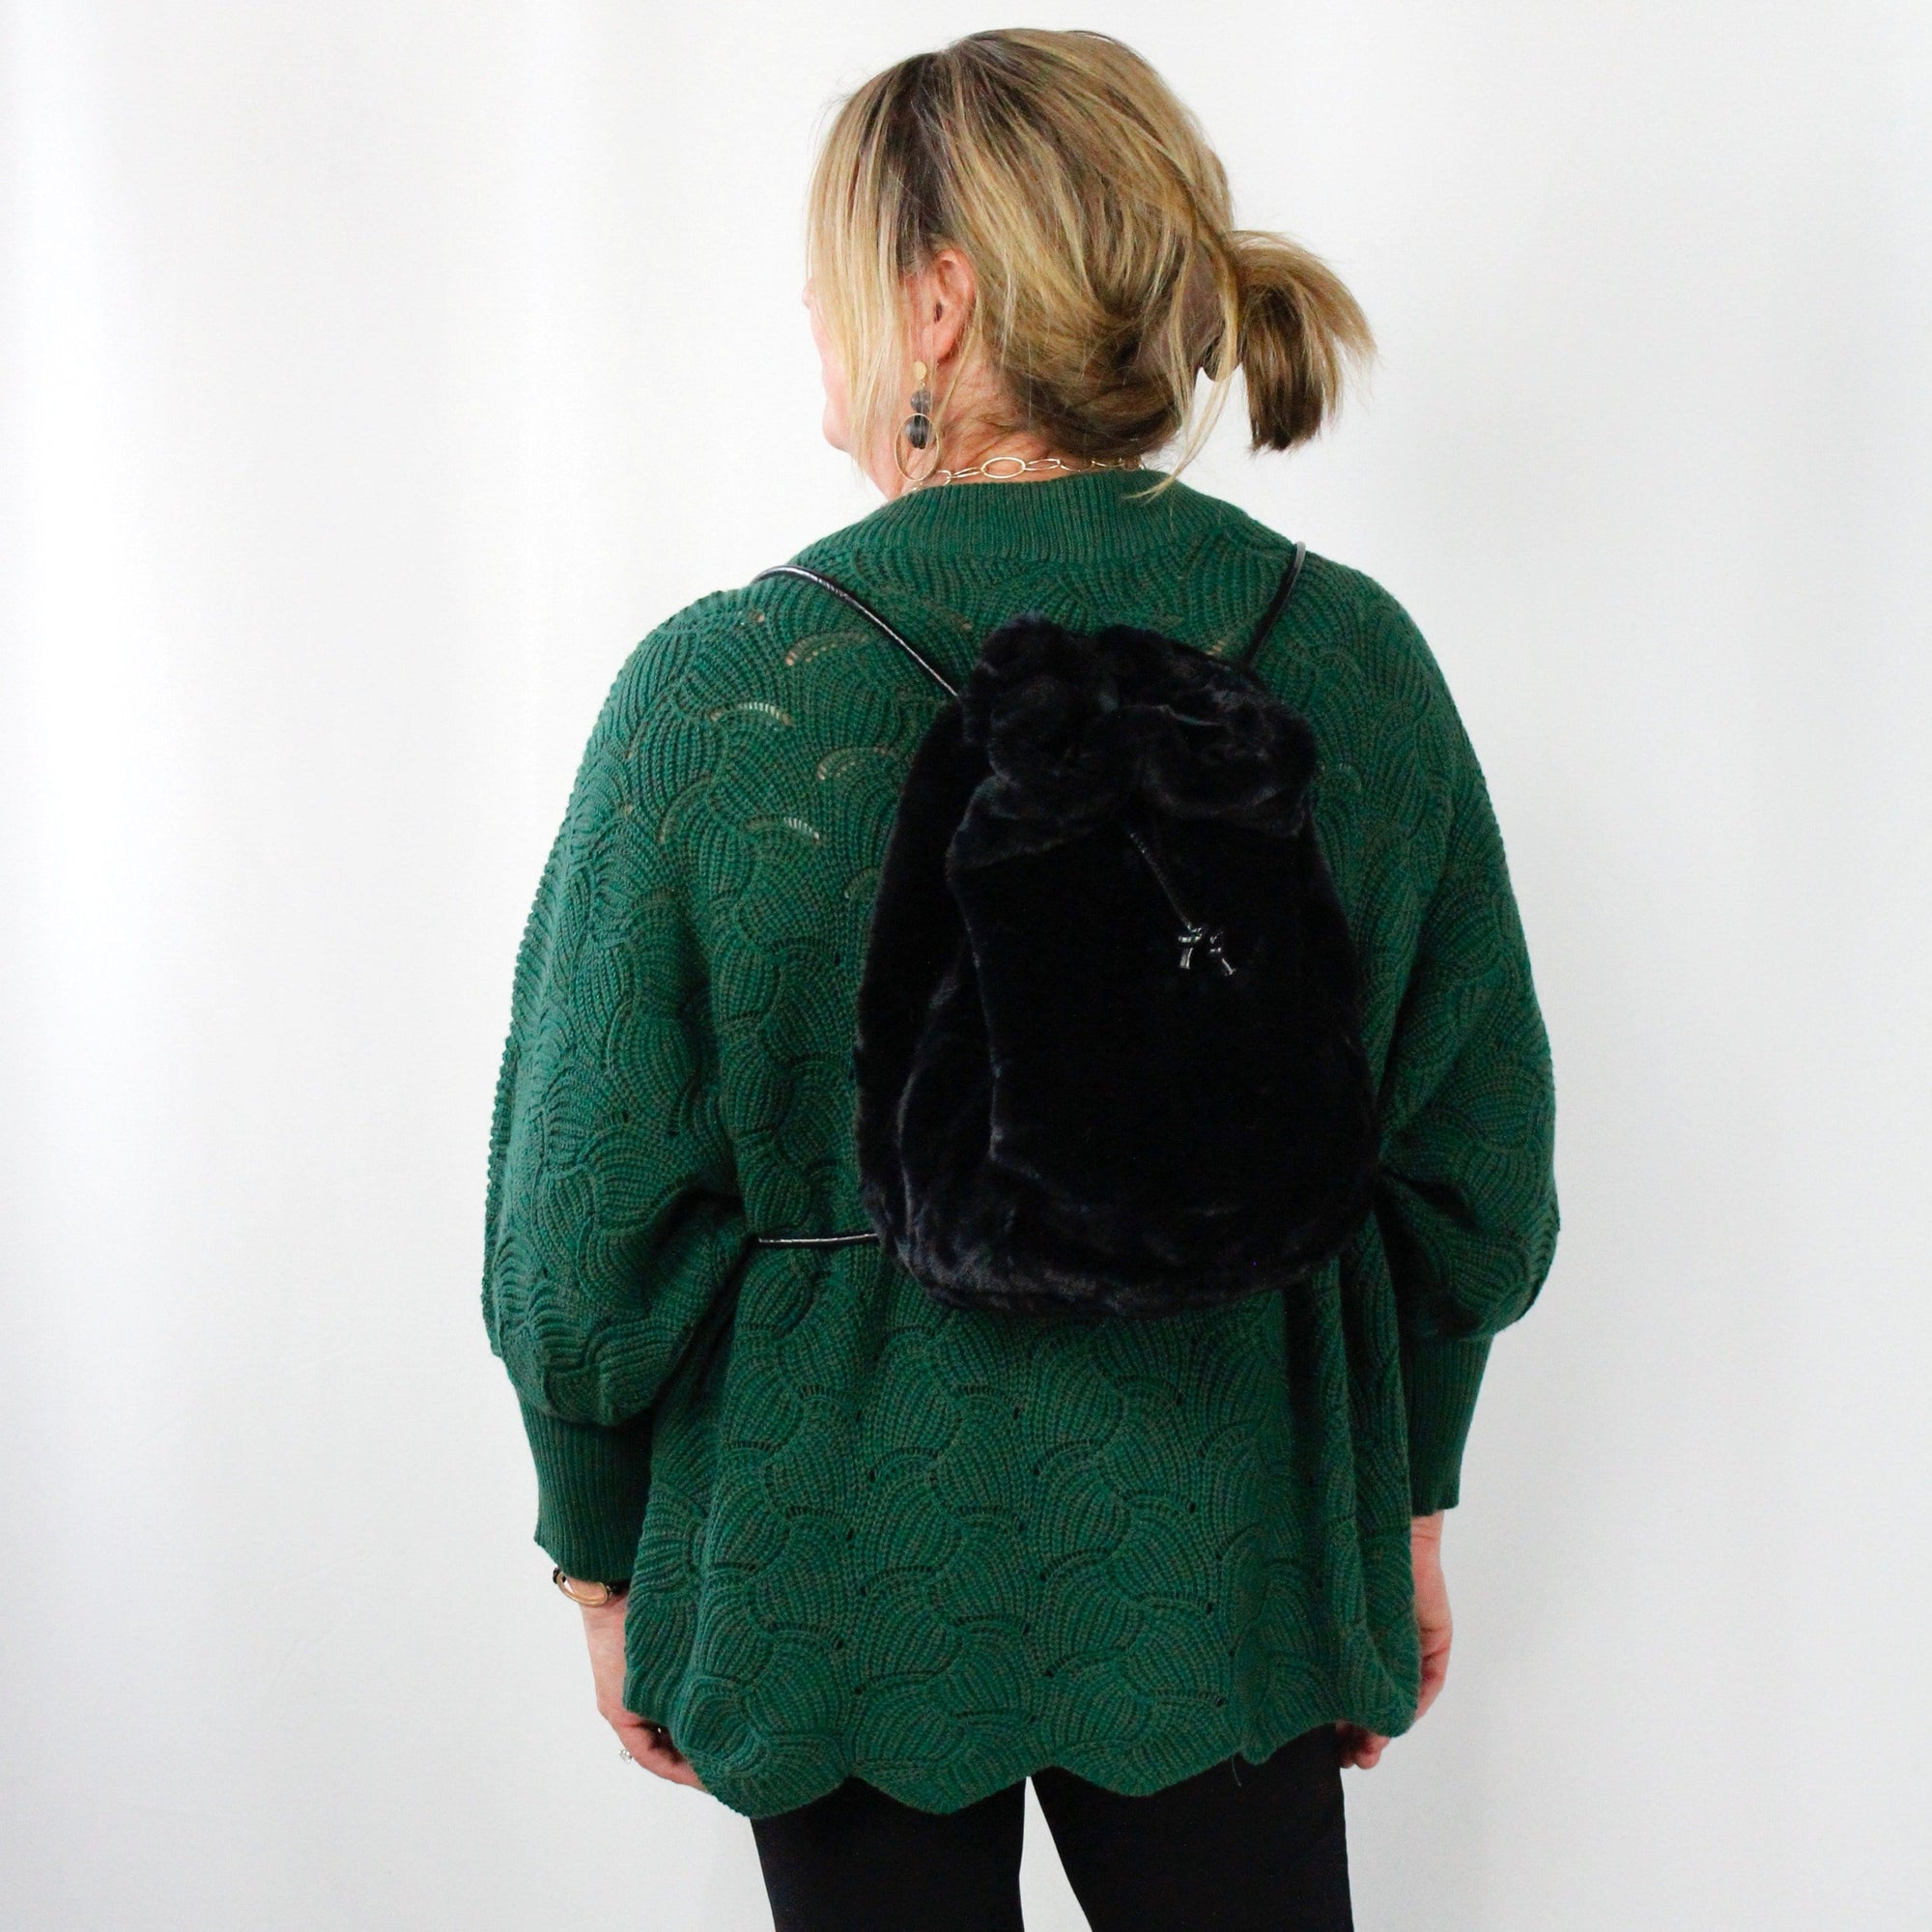 Fur Drawstring Backpack